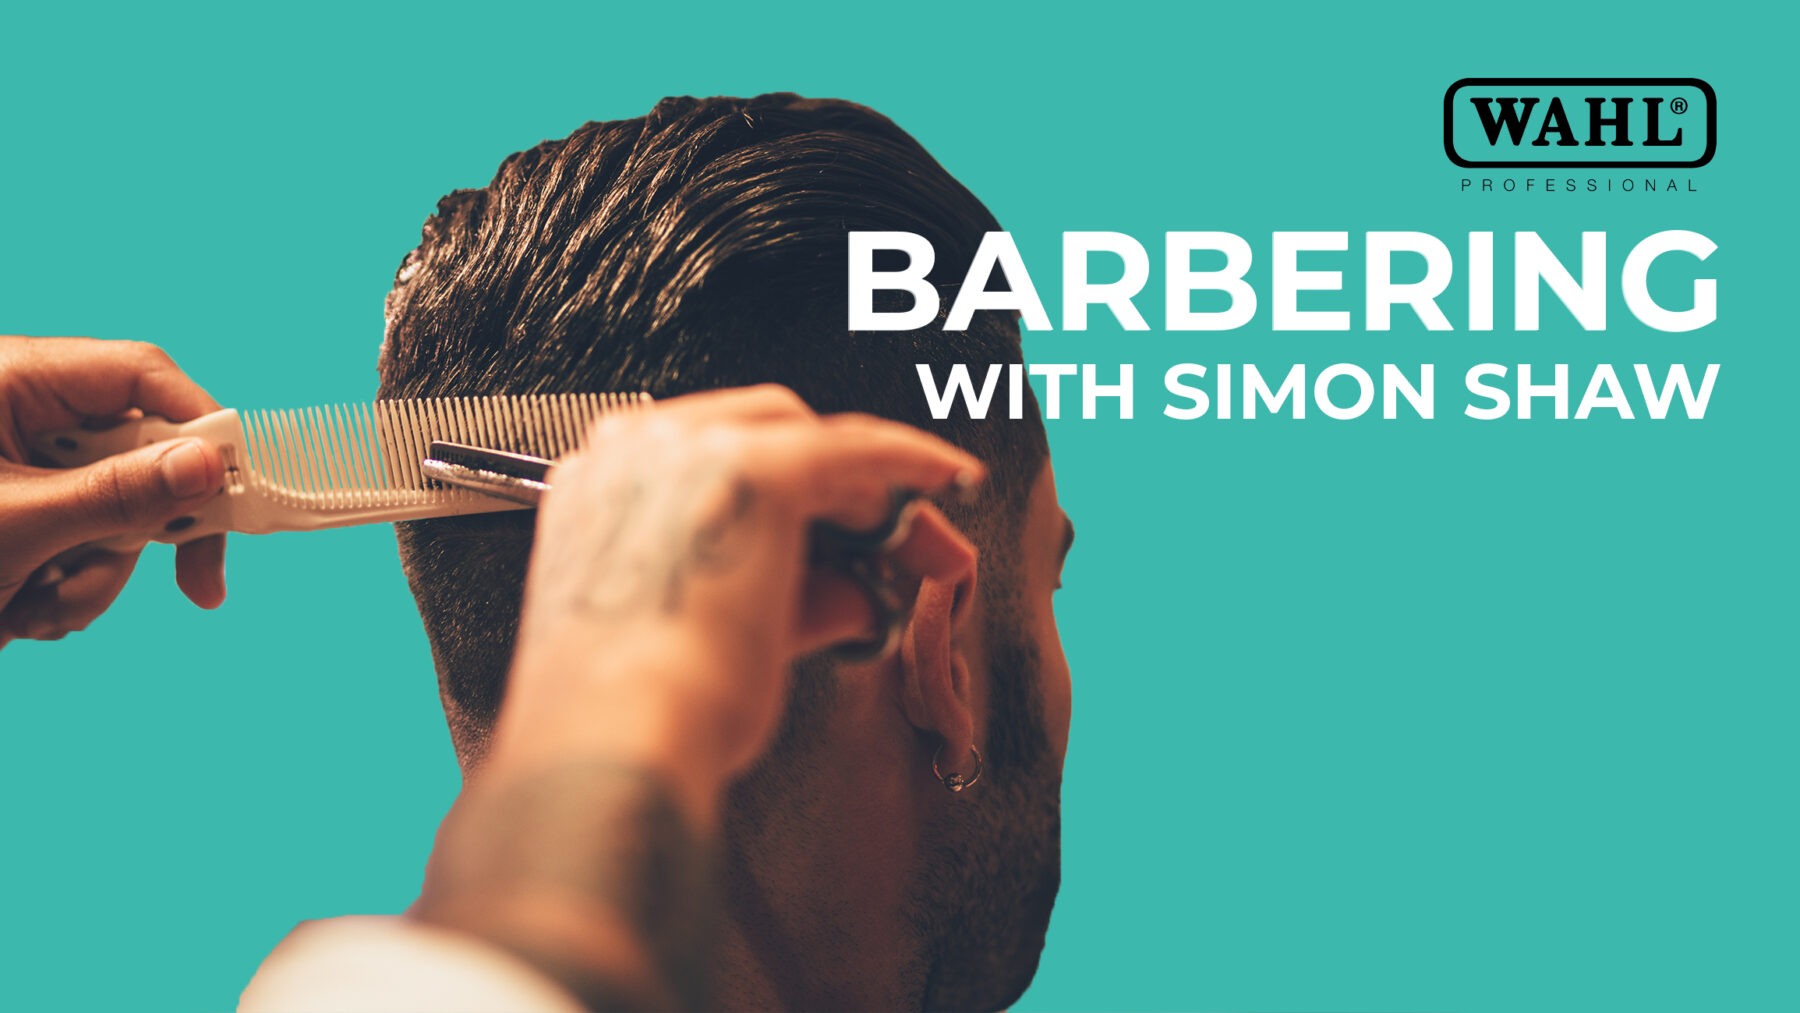 Barbering with Simon Shaw of Wahl